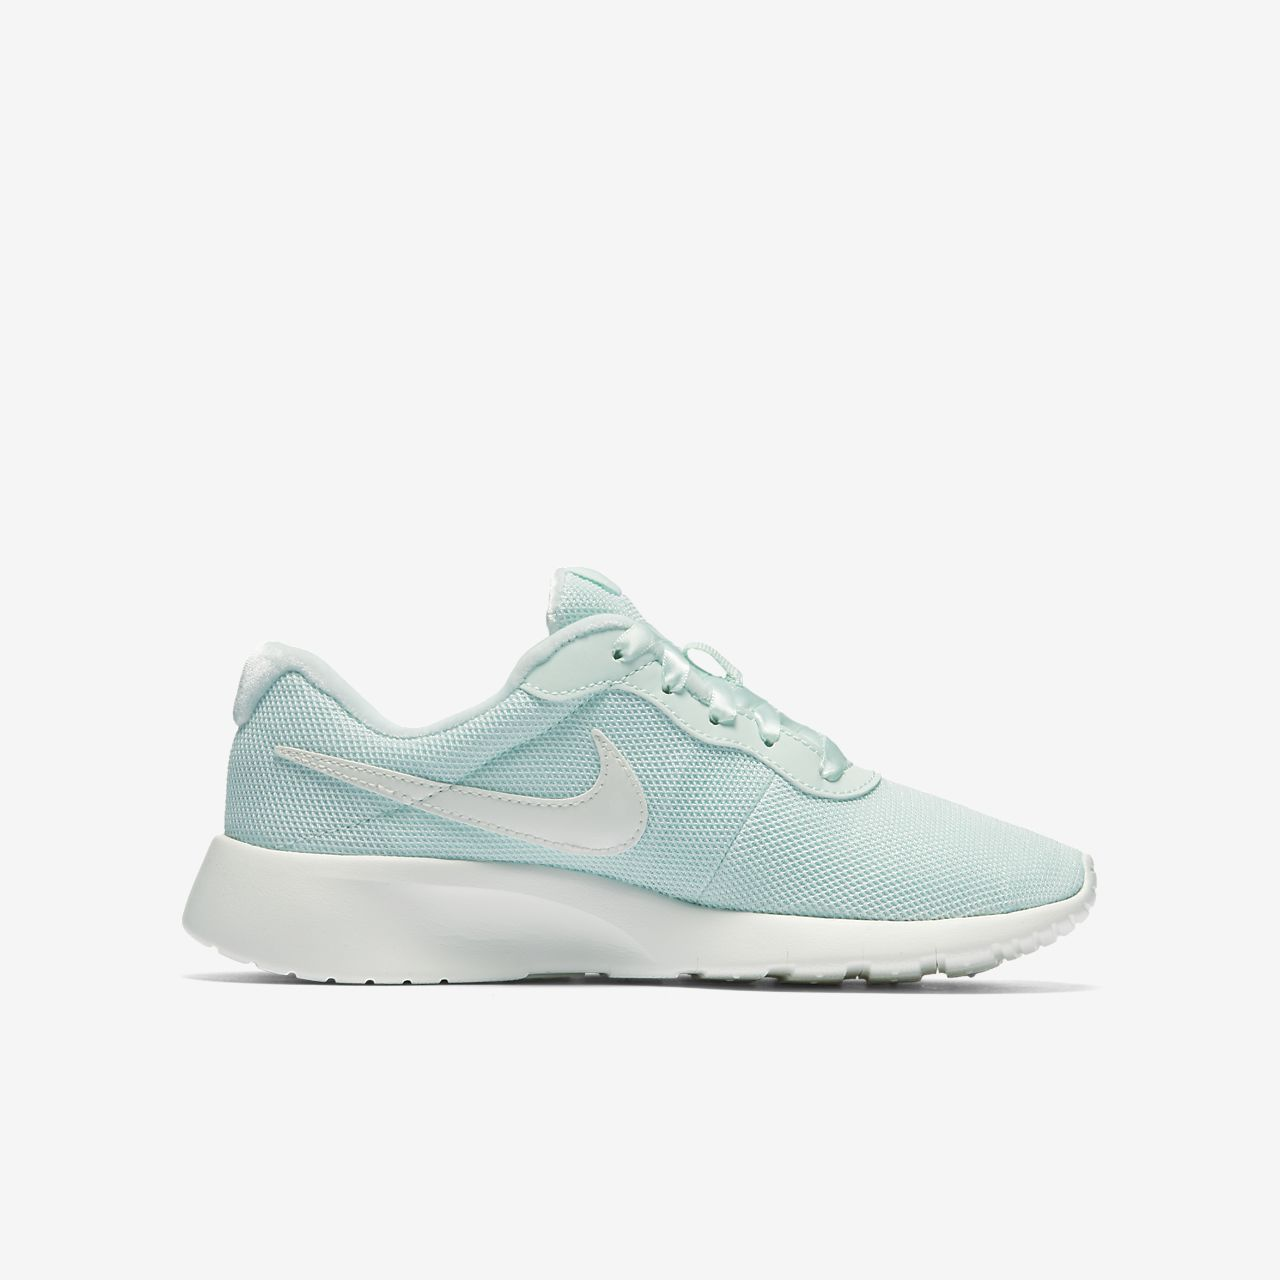 ... Nike Tanjun SE Older Kids' Shoe